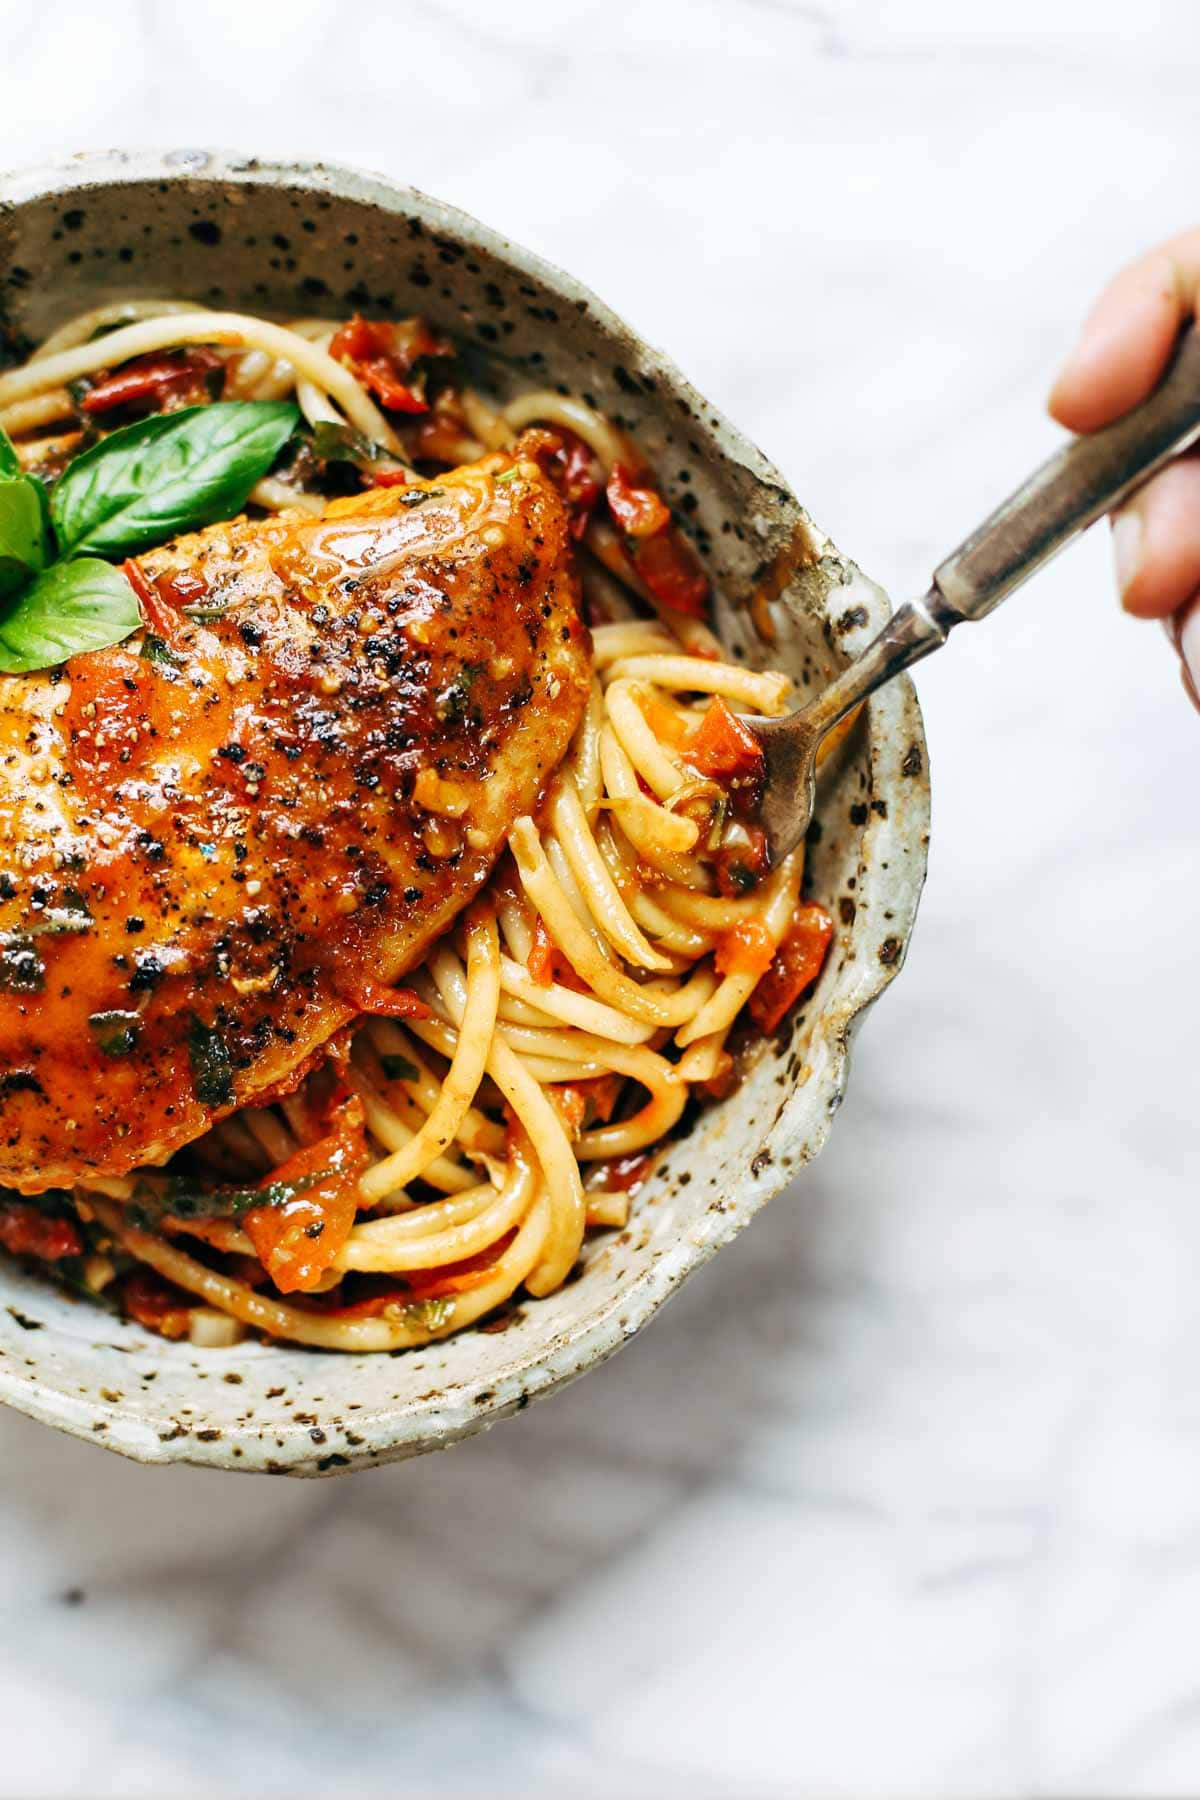 Garlic Basil Chicken - you won't believe that this easy real food recipe only requires 7 ingredients like basil, garlic, olive oil, tomatoes, and butter.   pinchofyum.com